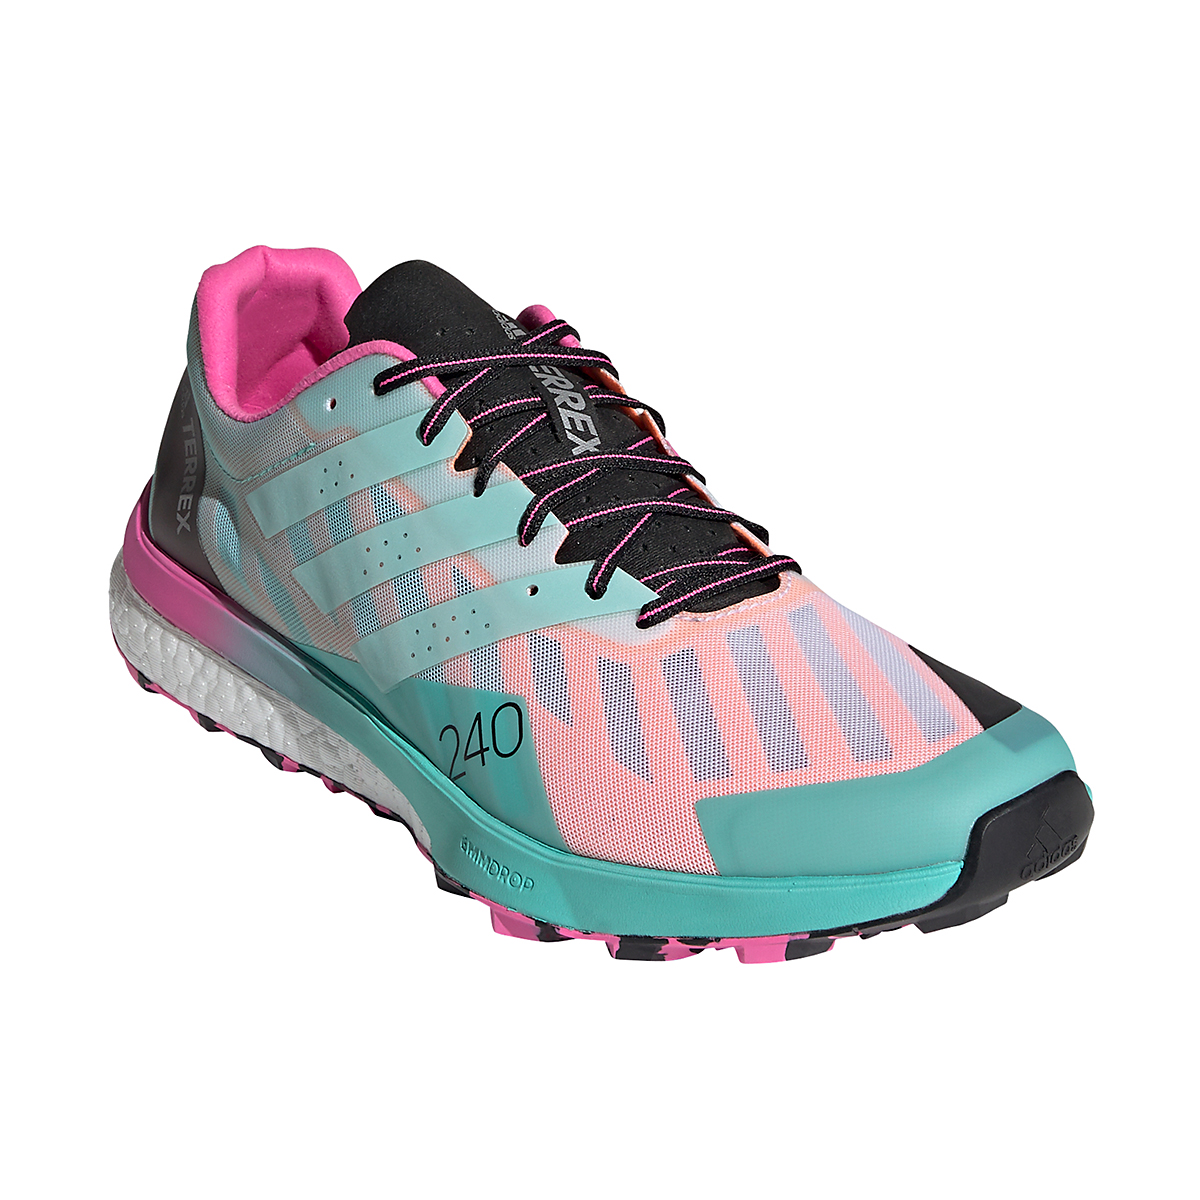 Men's Adidas Terrex Speed Ultra Trail Running Shoe - Color: White/Clear Mint/Screaming Pink - Size: 6.5 - Width: Regular, White/Clear Mint/Screaming Pink, large, image 2